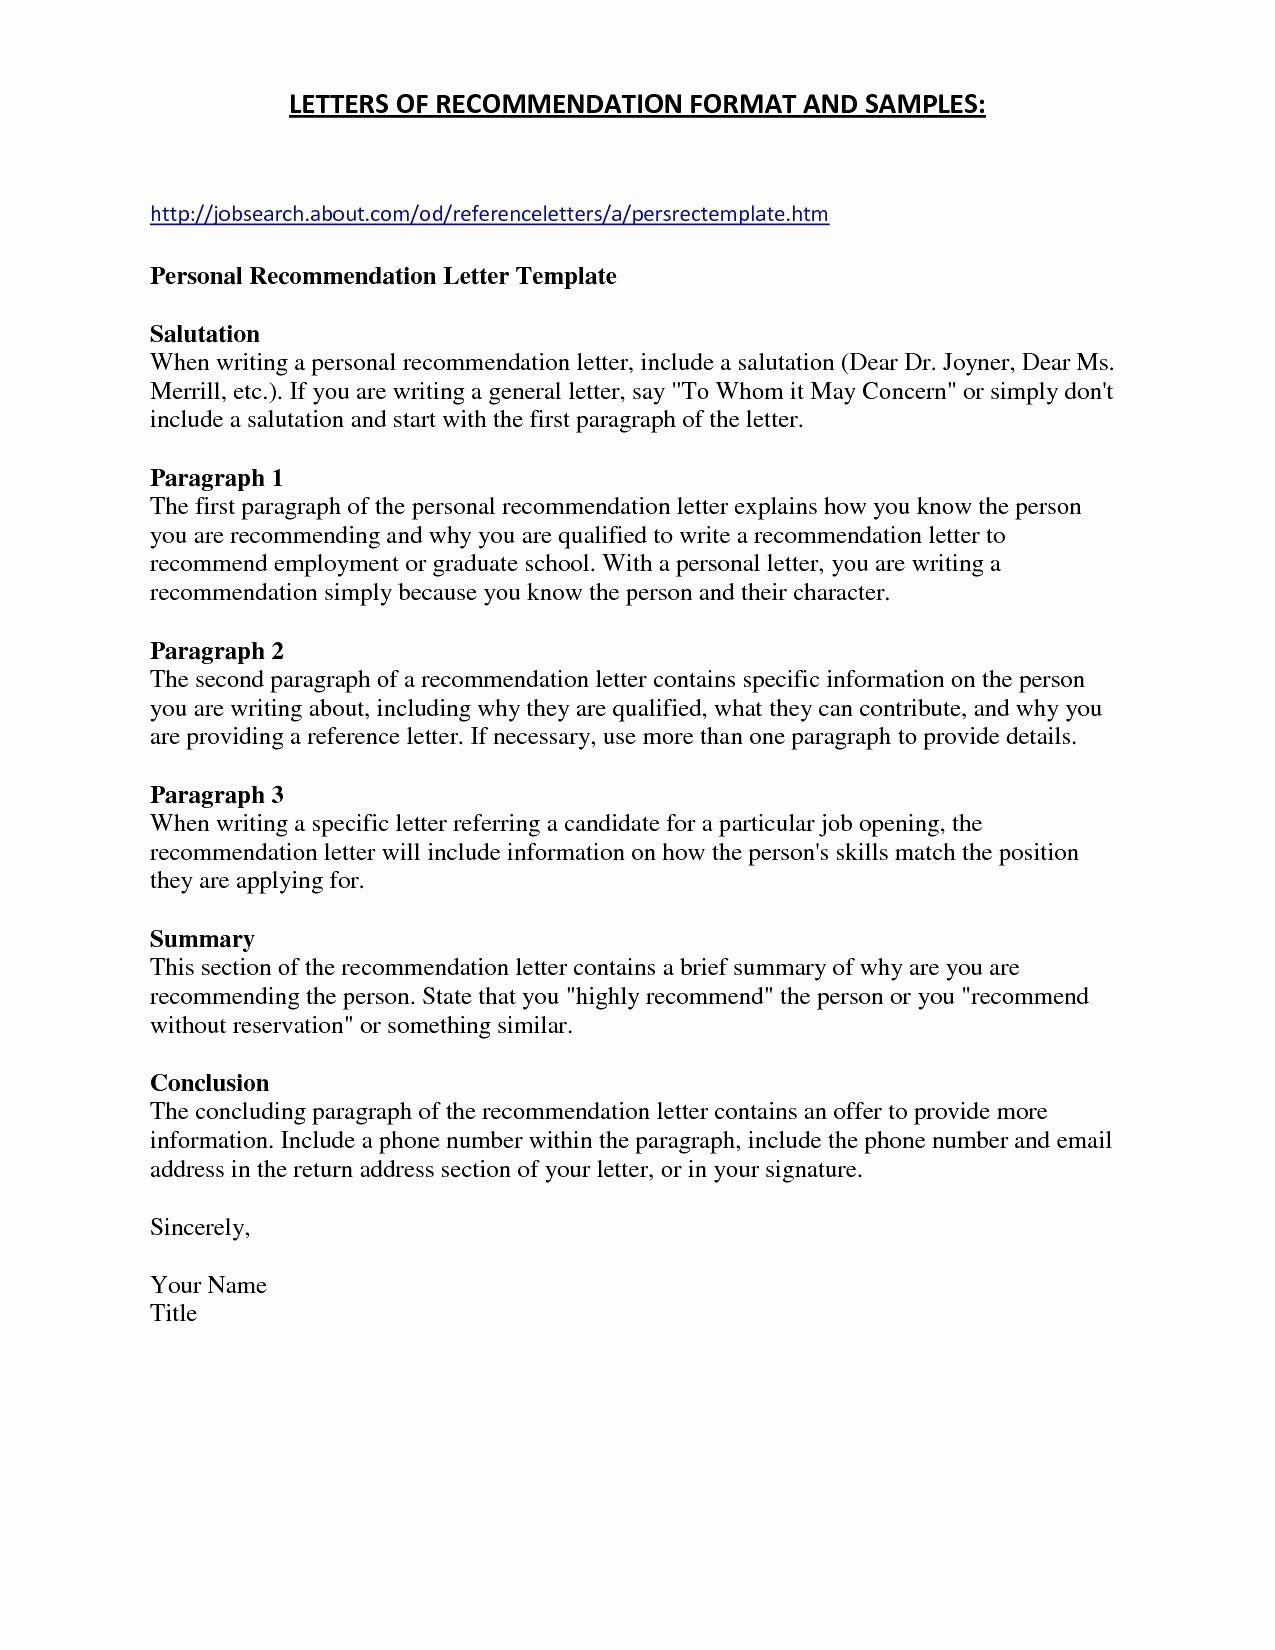 free reference letter template for employment example-Resume Writing Formats Valid Free Web Resume Templates List Best Pr Resume Template Elegant 9-g